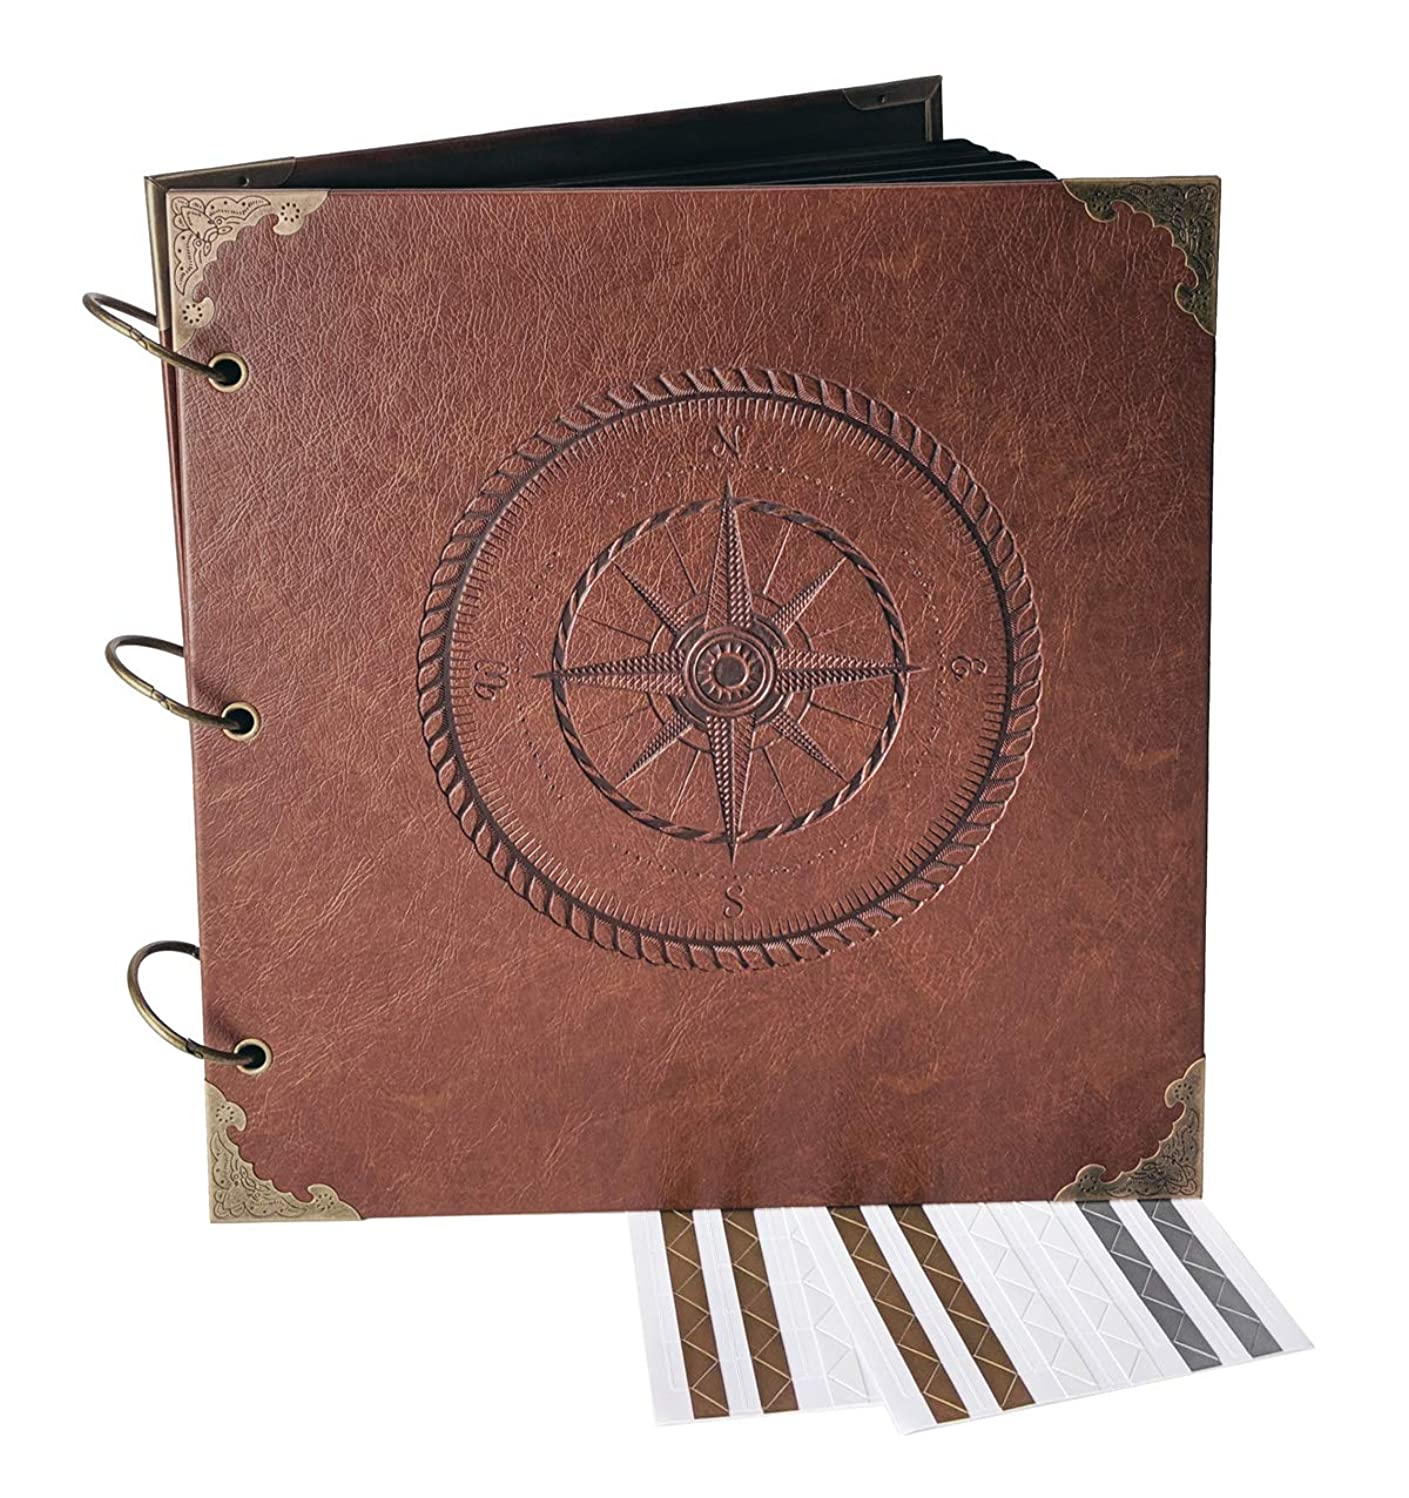 Navigating Life, Compass - Engraved Travel Adventure Book, Hard Cover, Ring Bound Scrapbook, Photo Album (Black Sheets, 10.5